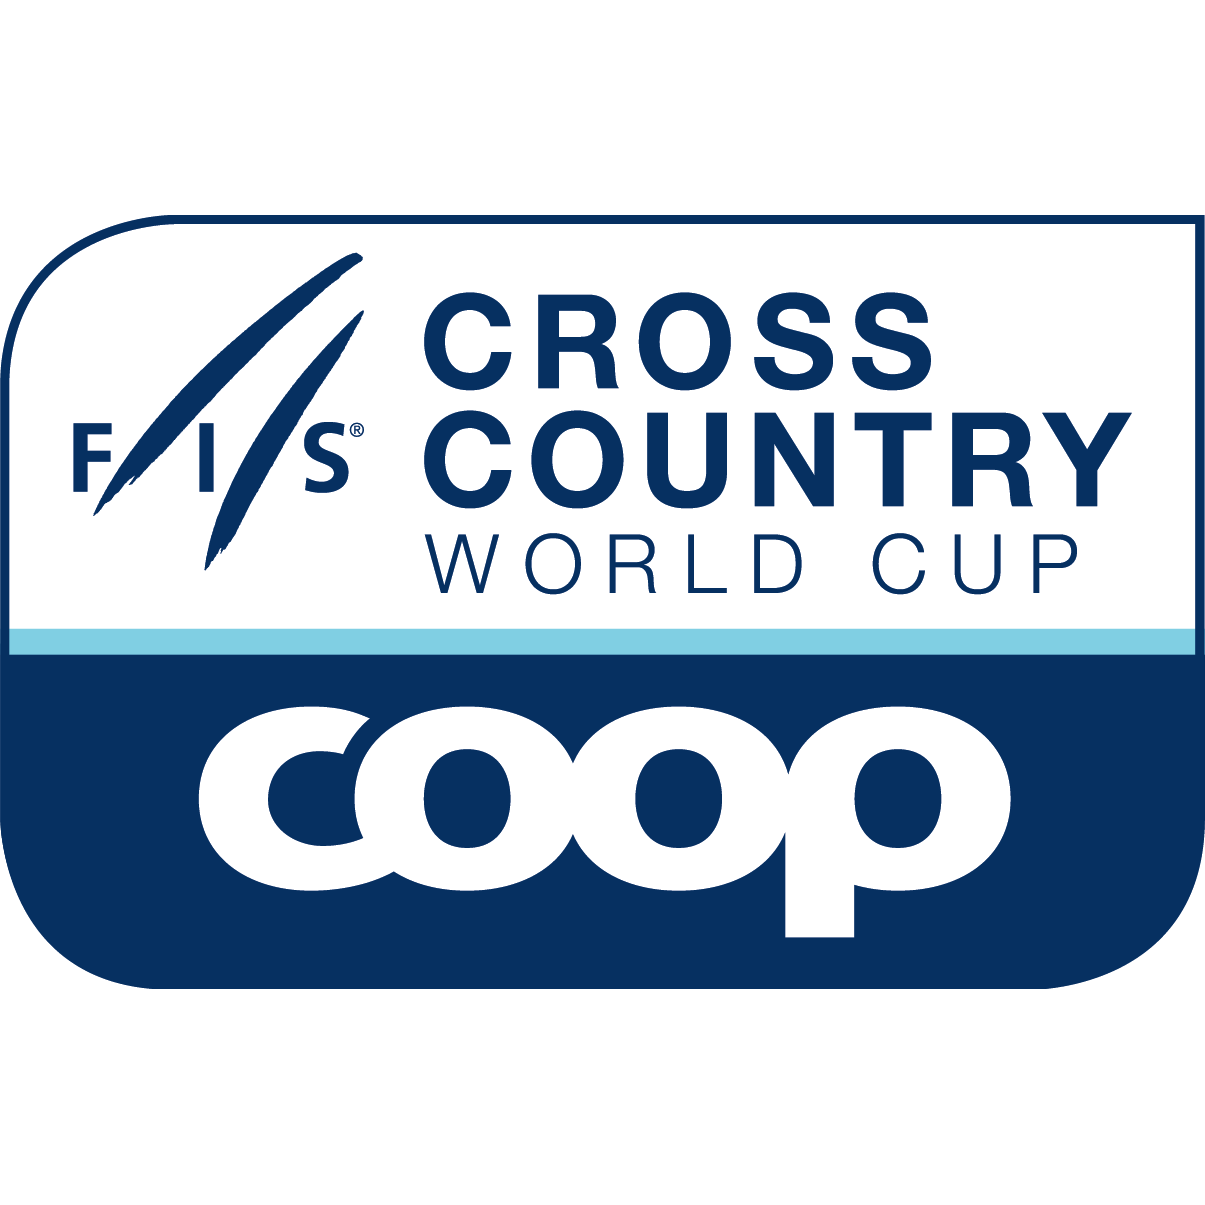 2020 FIS Cross Country World Cup - Tour de Ski